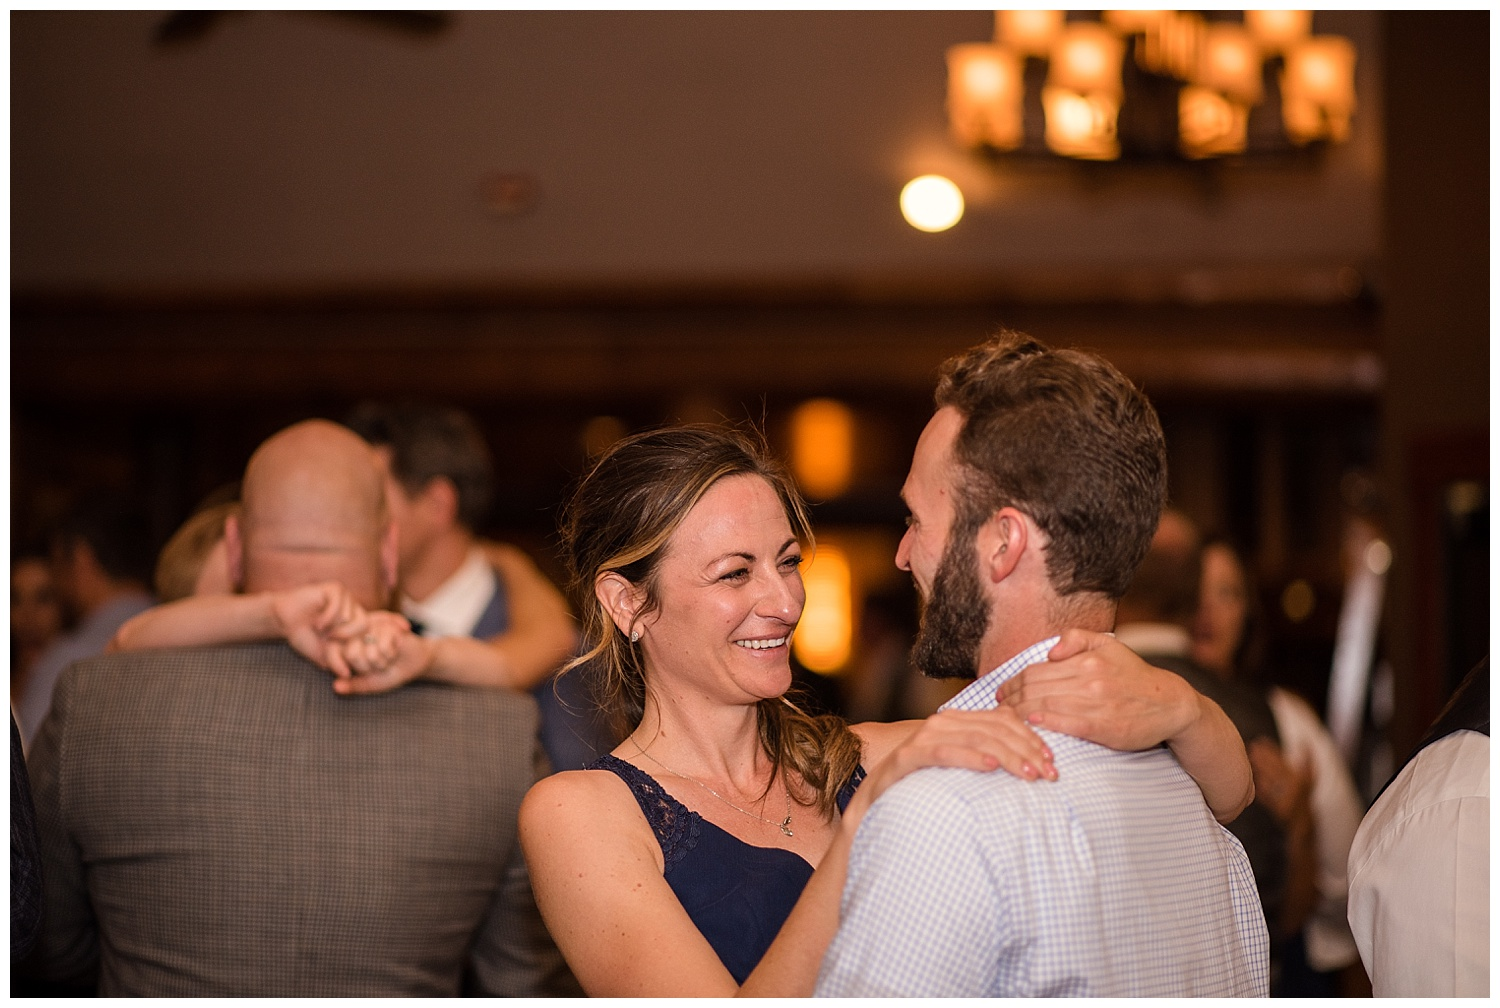 wedding guests dancing at estes park resort, rocky mountain elopement photographer, rocky mountain wedding photographer, colorado wedding photographer, Estes Park wedding photographer